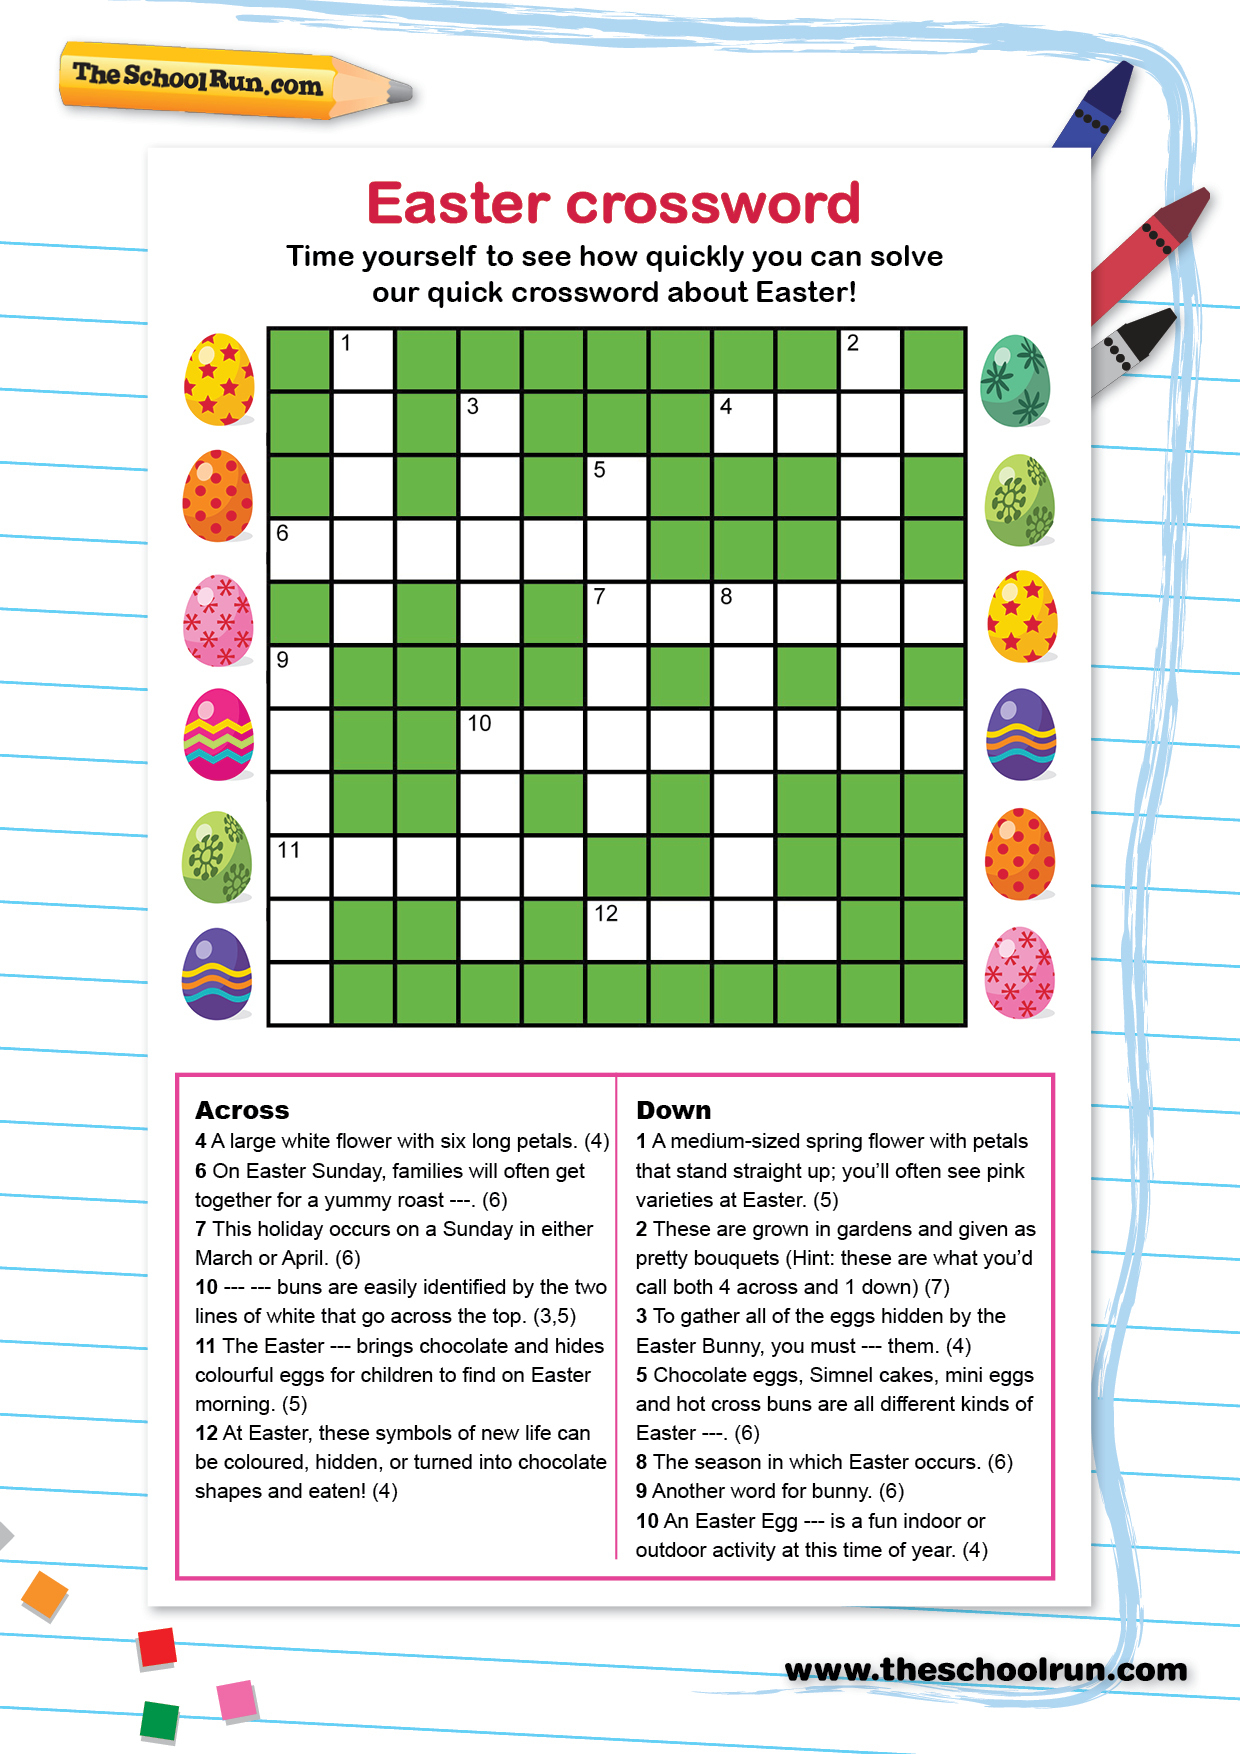 Word Puzzles For Primary School Children | Theschoolrun - Printable Children's Crossword Puzzles Uk